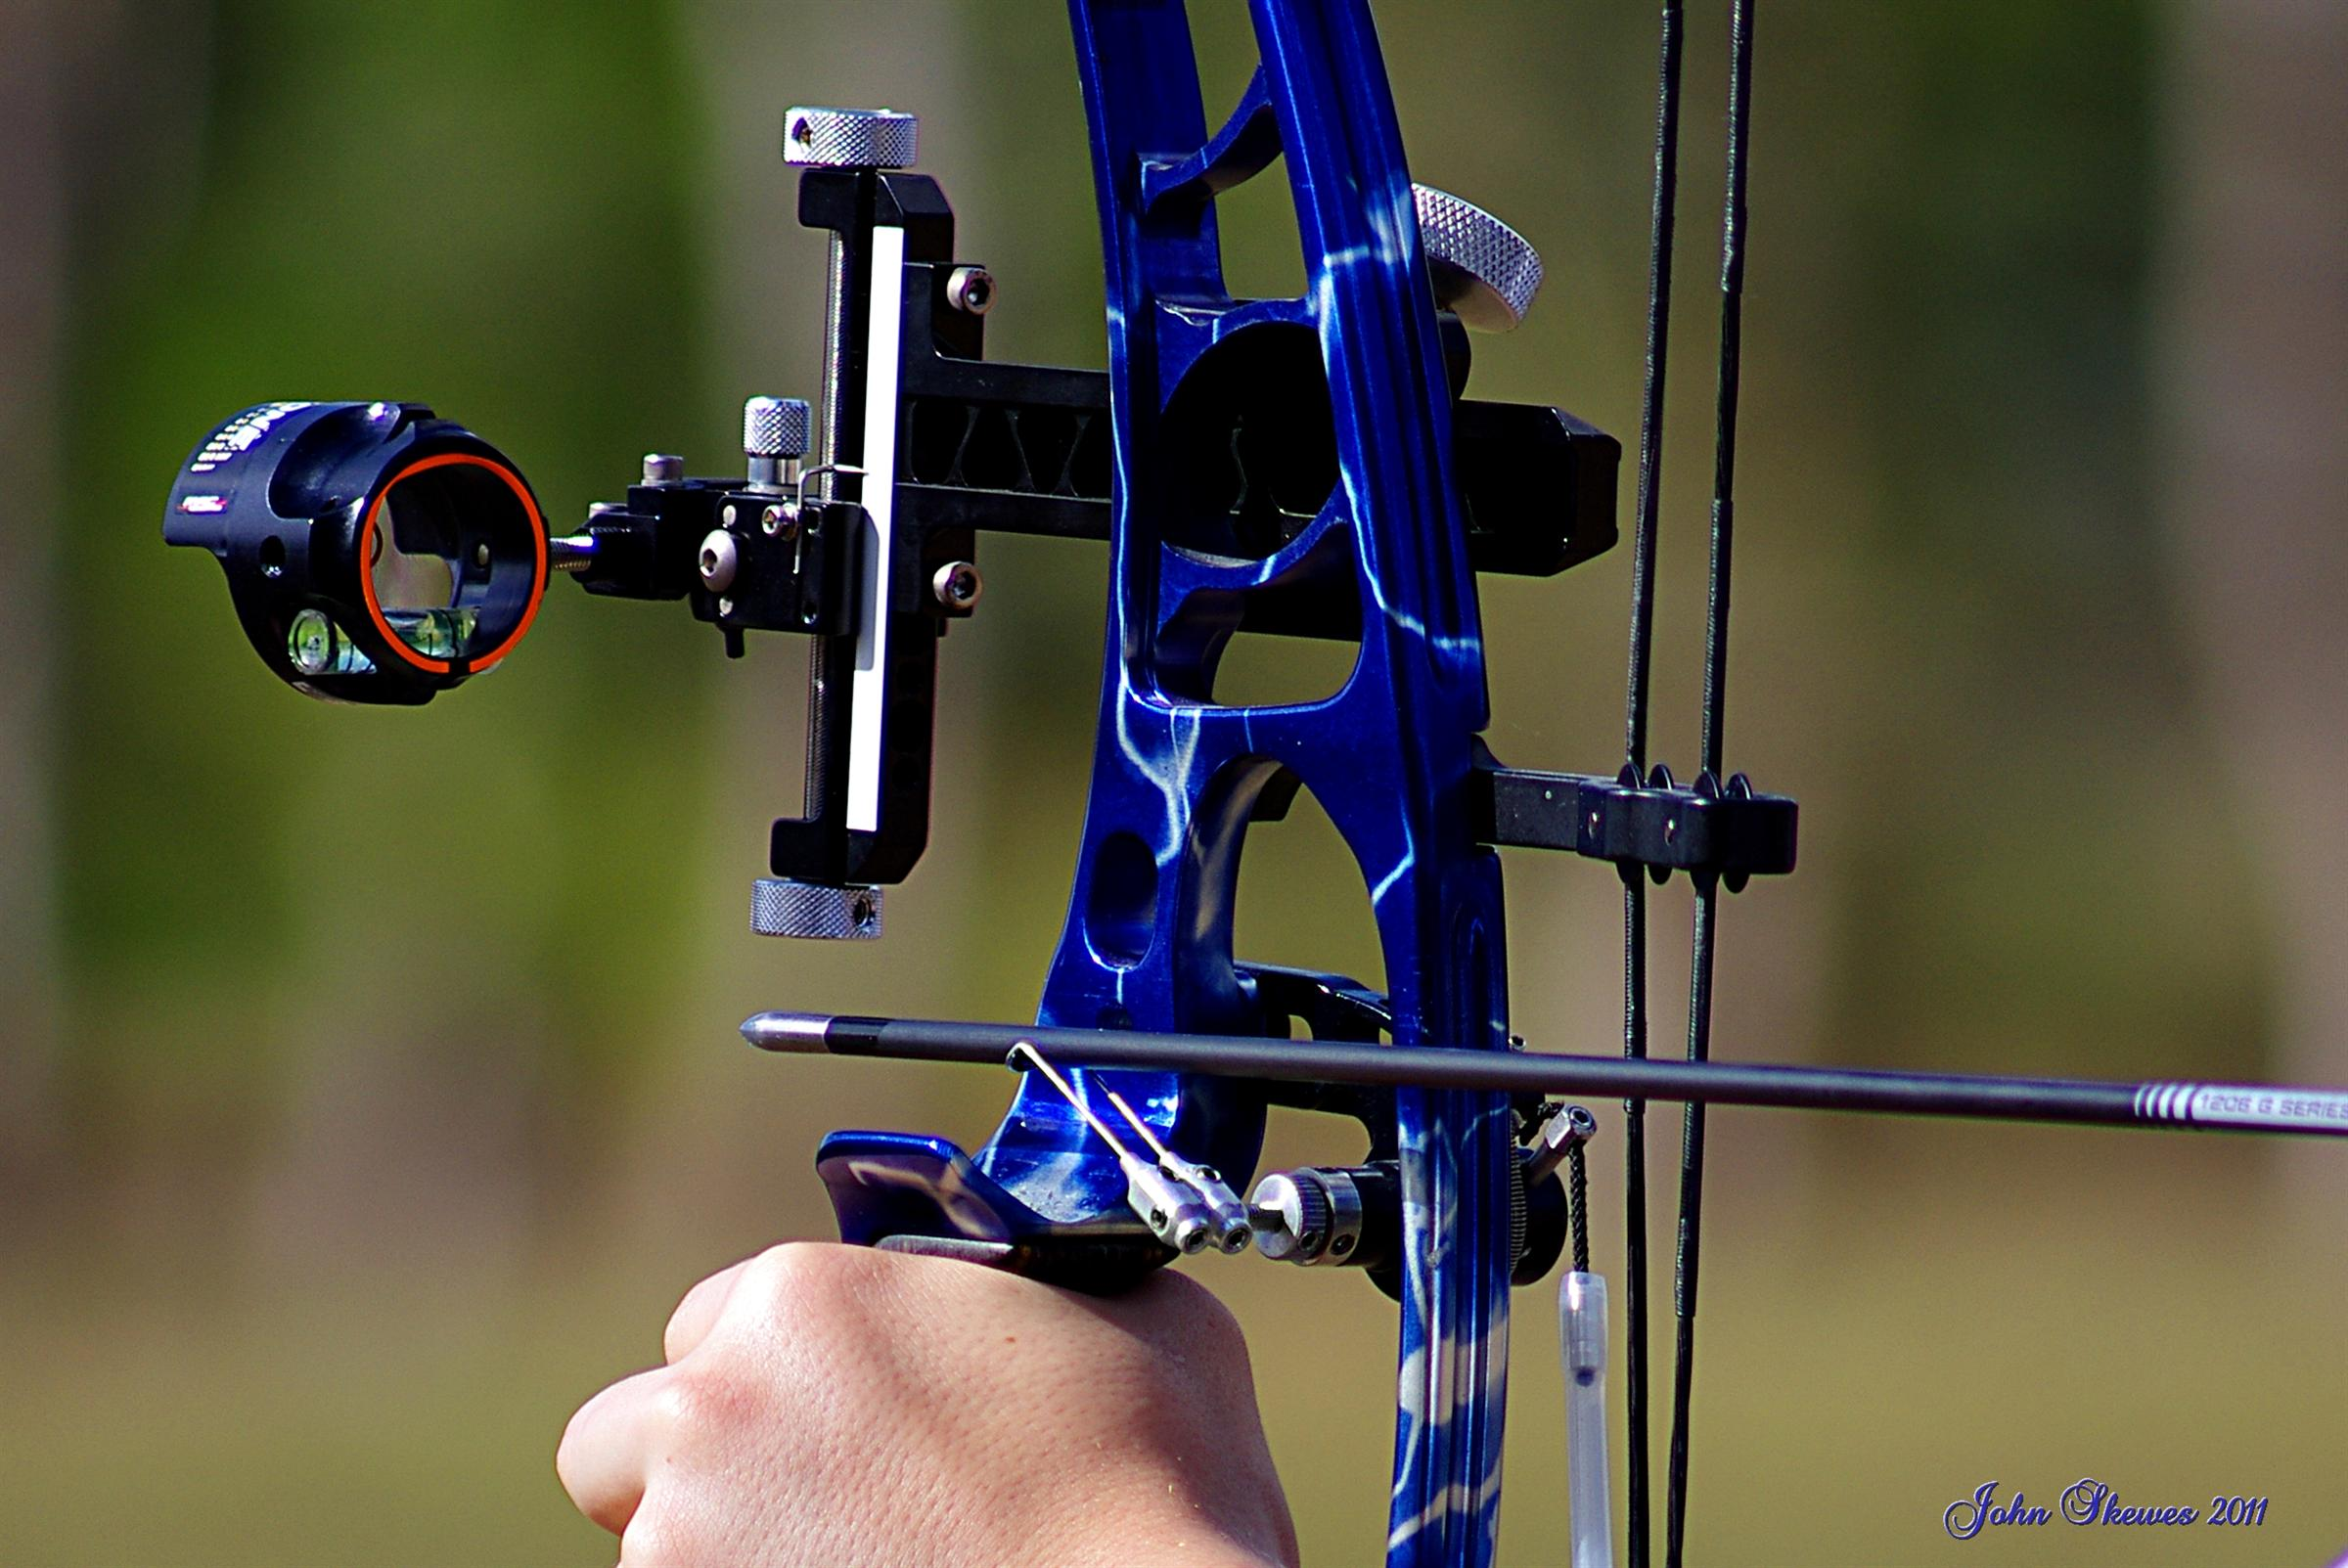 Modern archers and shooters are dependent on the manufacturers of equipment and ammunition in a way that ancient hunters, who could craft their own equipment, were not.